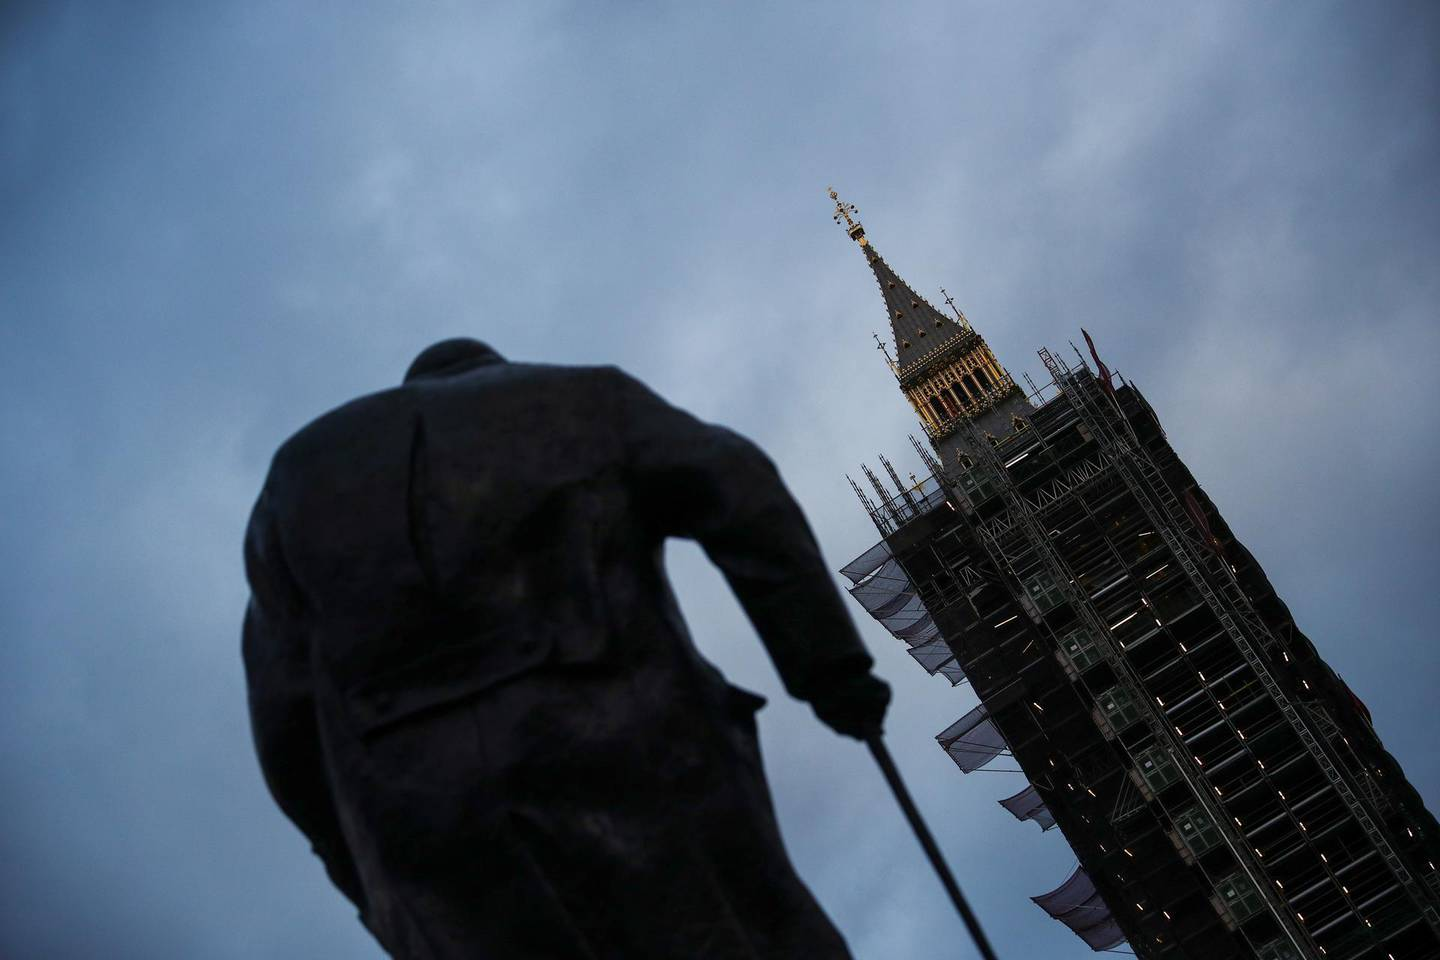 A view shows a statue of Winston Churchill standing in front of Big Ben amidst the spread of the coronavirus disease (COVID-19) pandemic, in London, Britain December 24, 2020. REUTERS/Hannah McKay